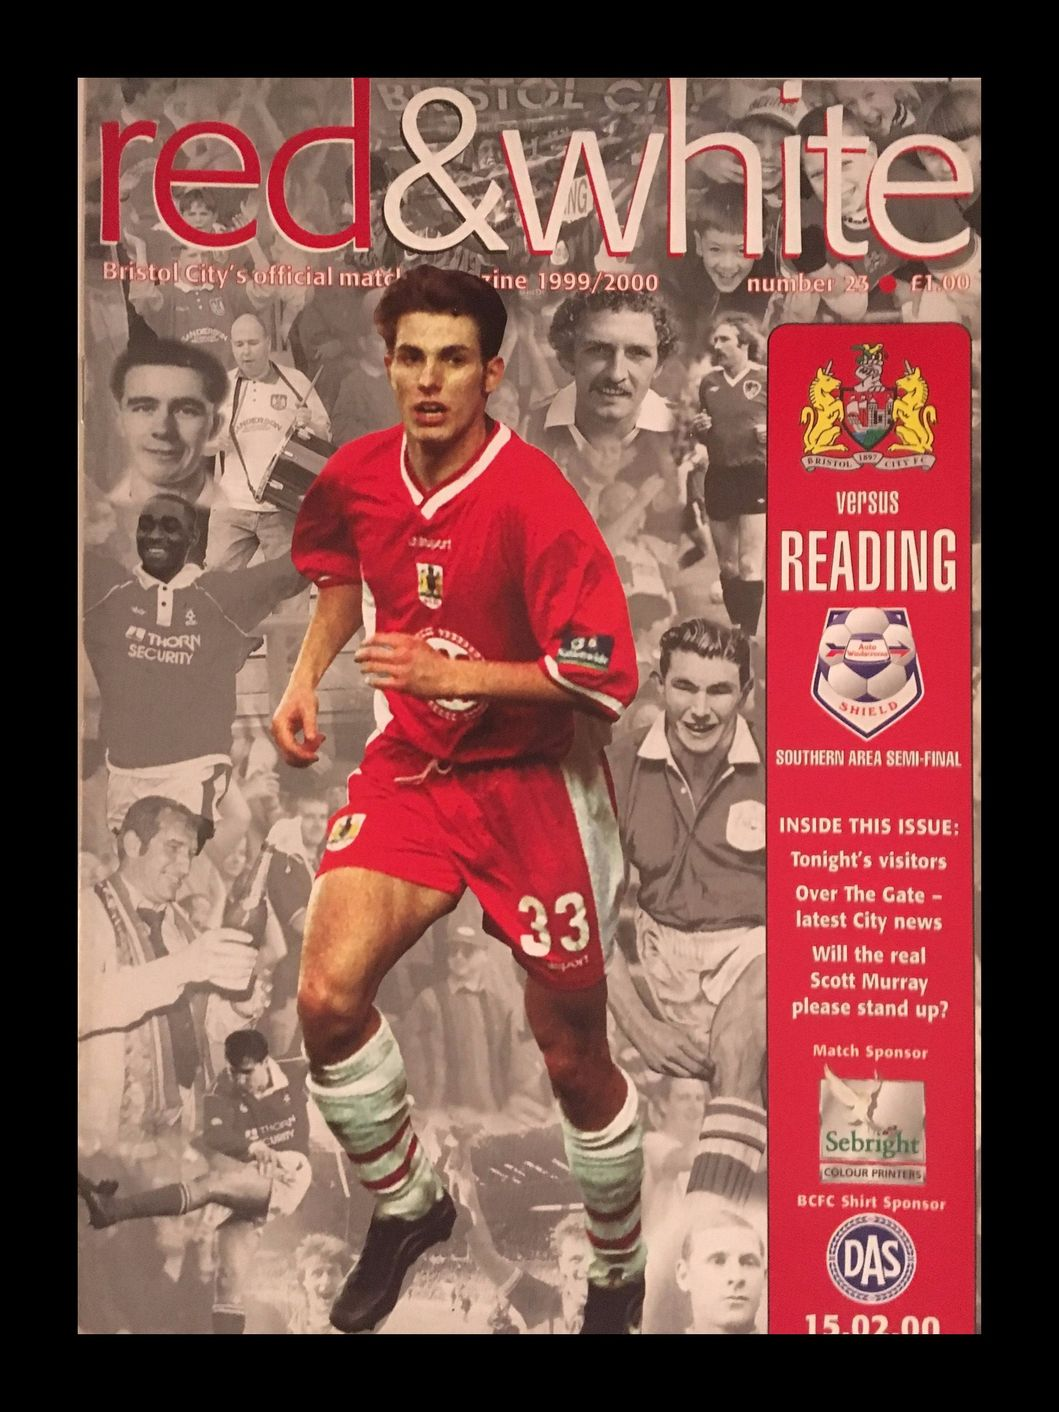 Bristol City v Reading 15-02-2000 Programme